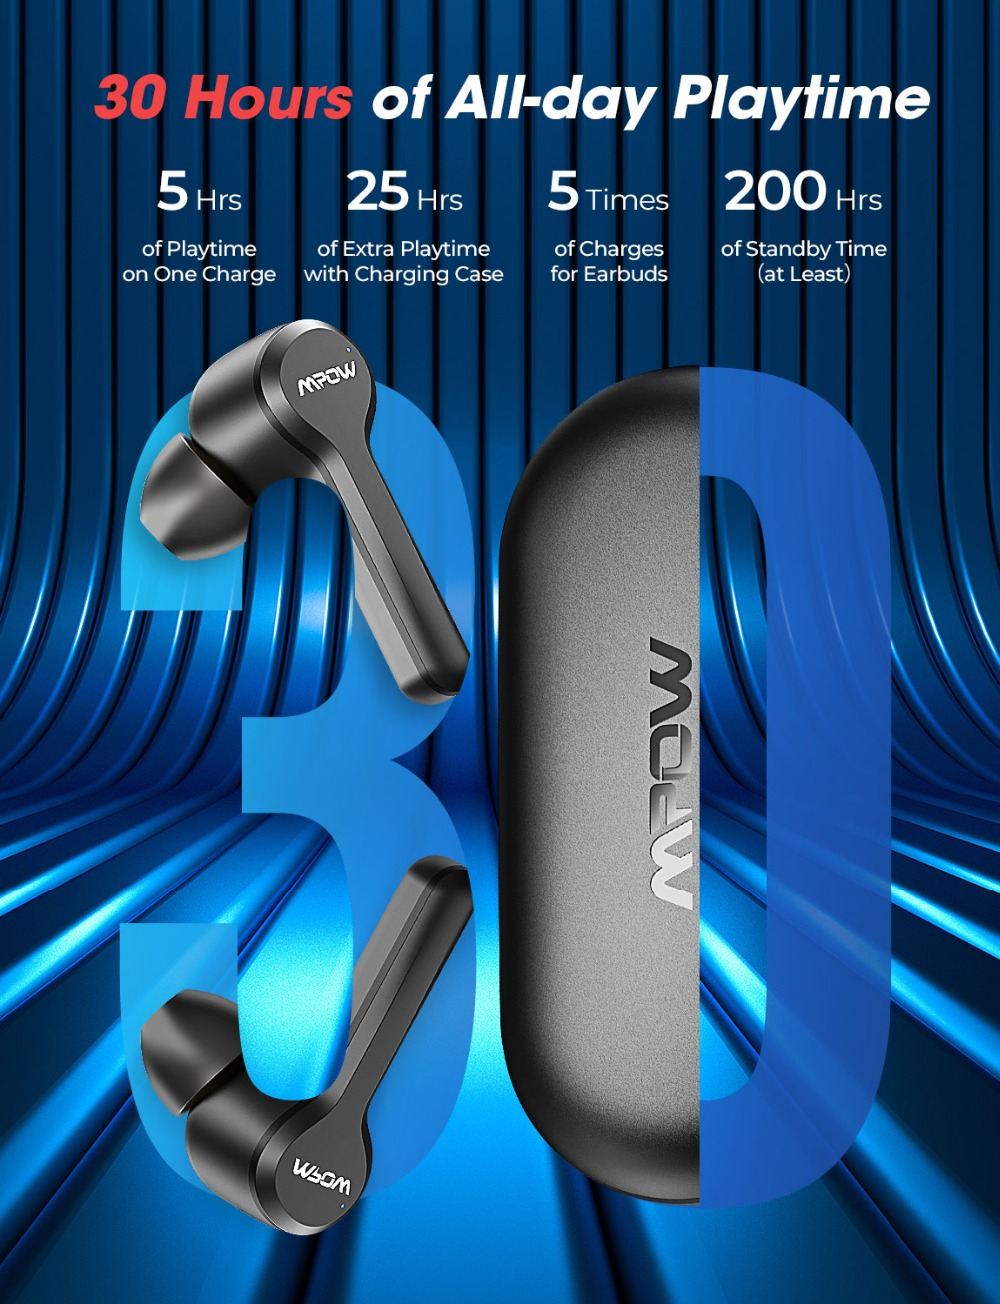 Mpow M9 TWS Earbuds True Wireless Bluetooth 5.0 Headphone IPX7 Waterproof Earphone With Charging Case 30H Playtime For iPhone 11 PK SoundPEATS TWS Earbuds (1)